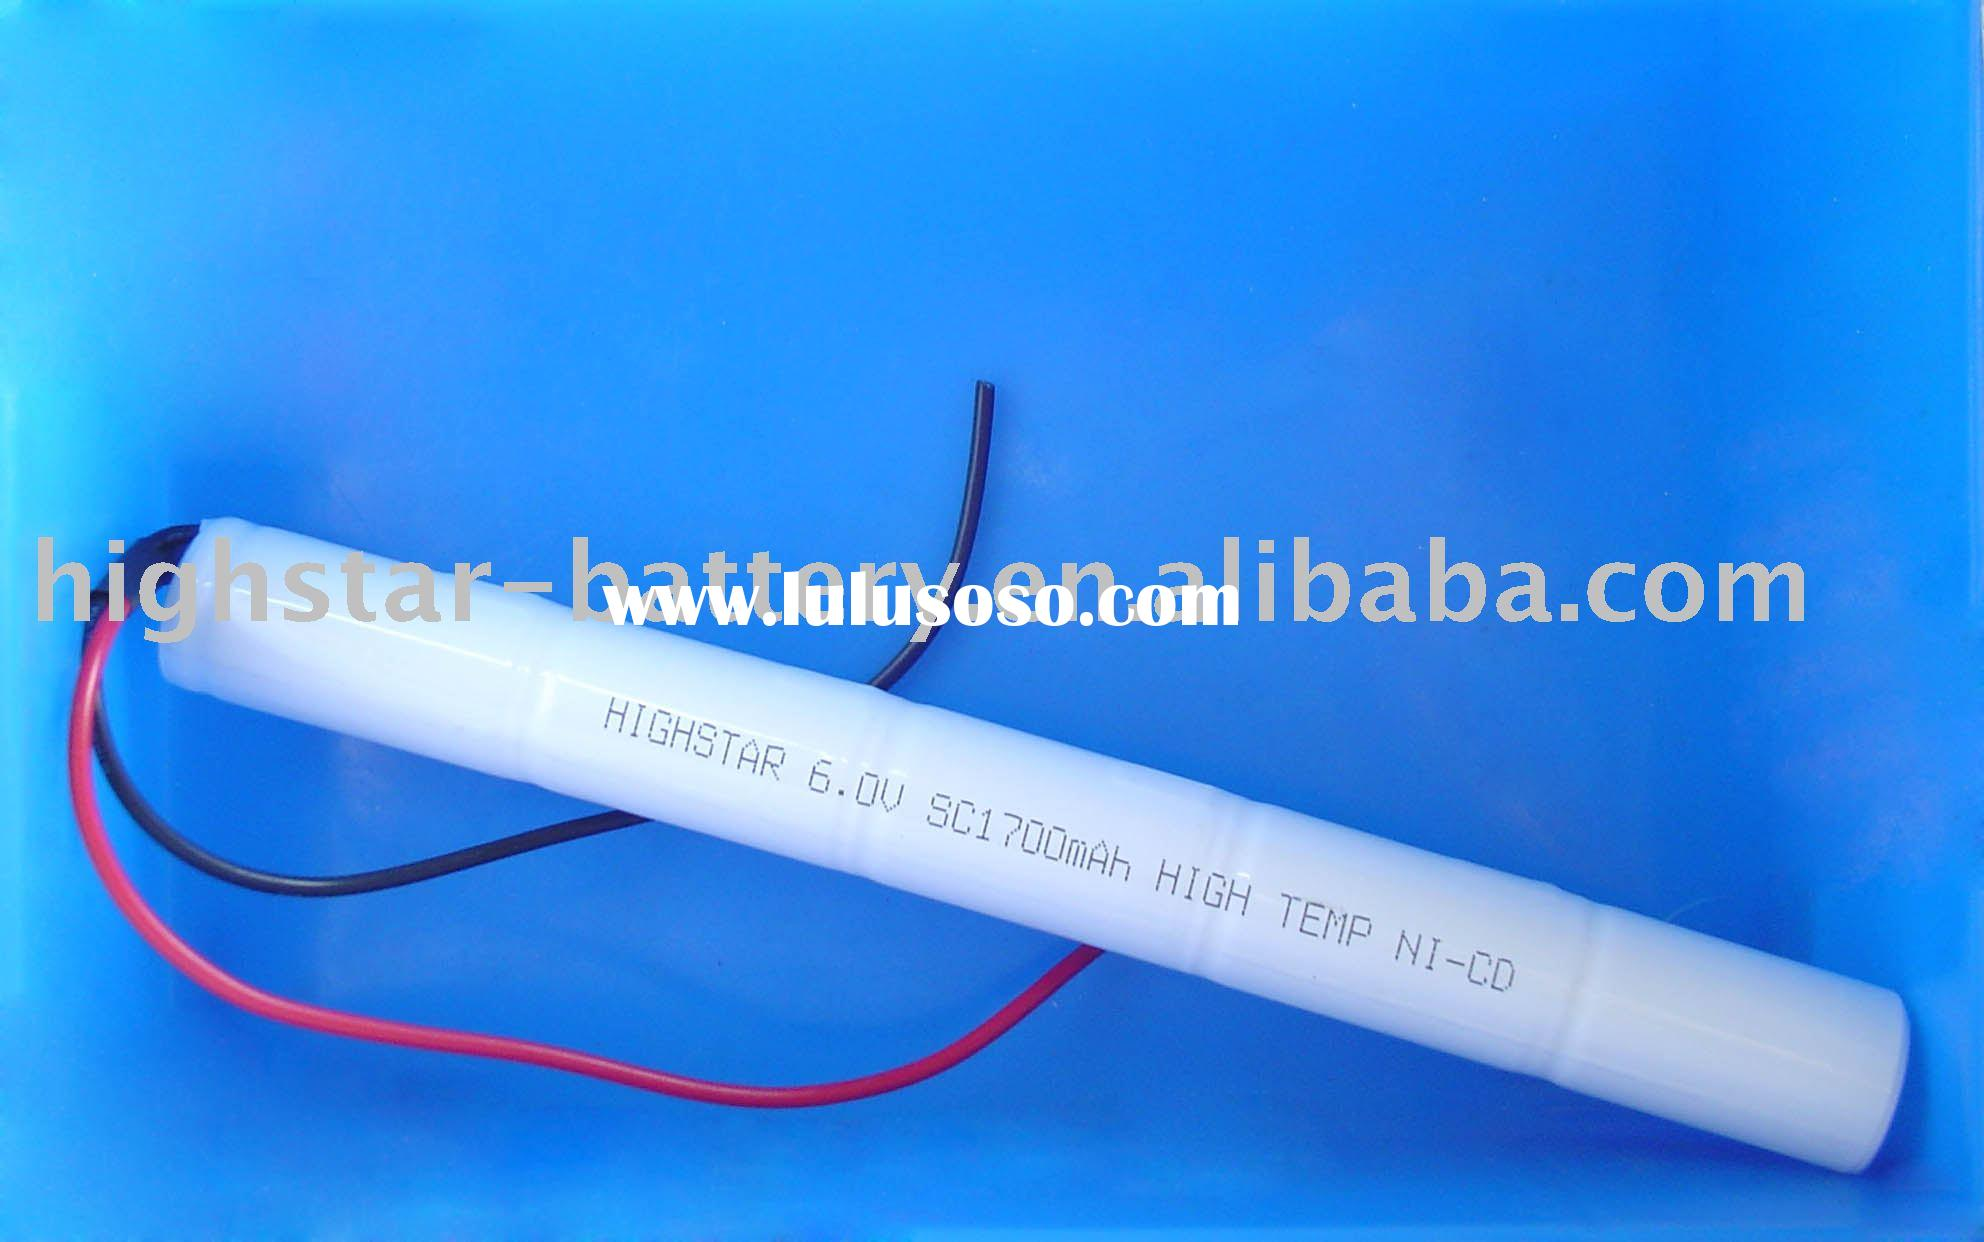 HIGH-TEMP Ni-Cd SC-1700mAh 6V Rechargeable Battery Pack